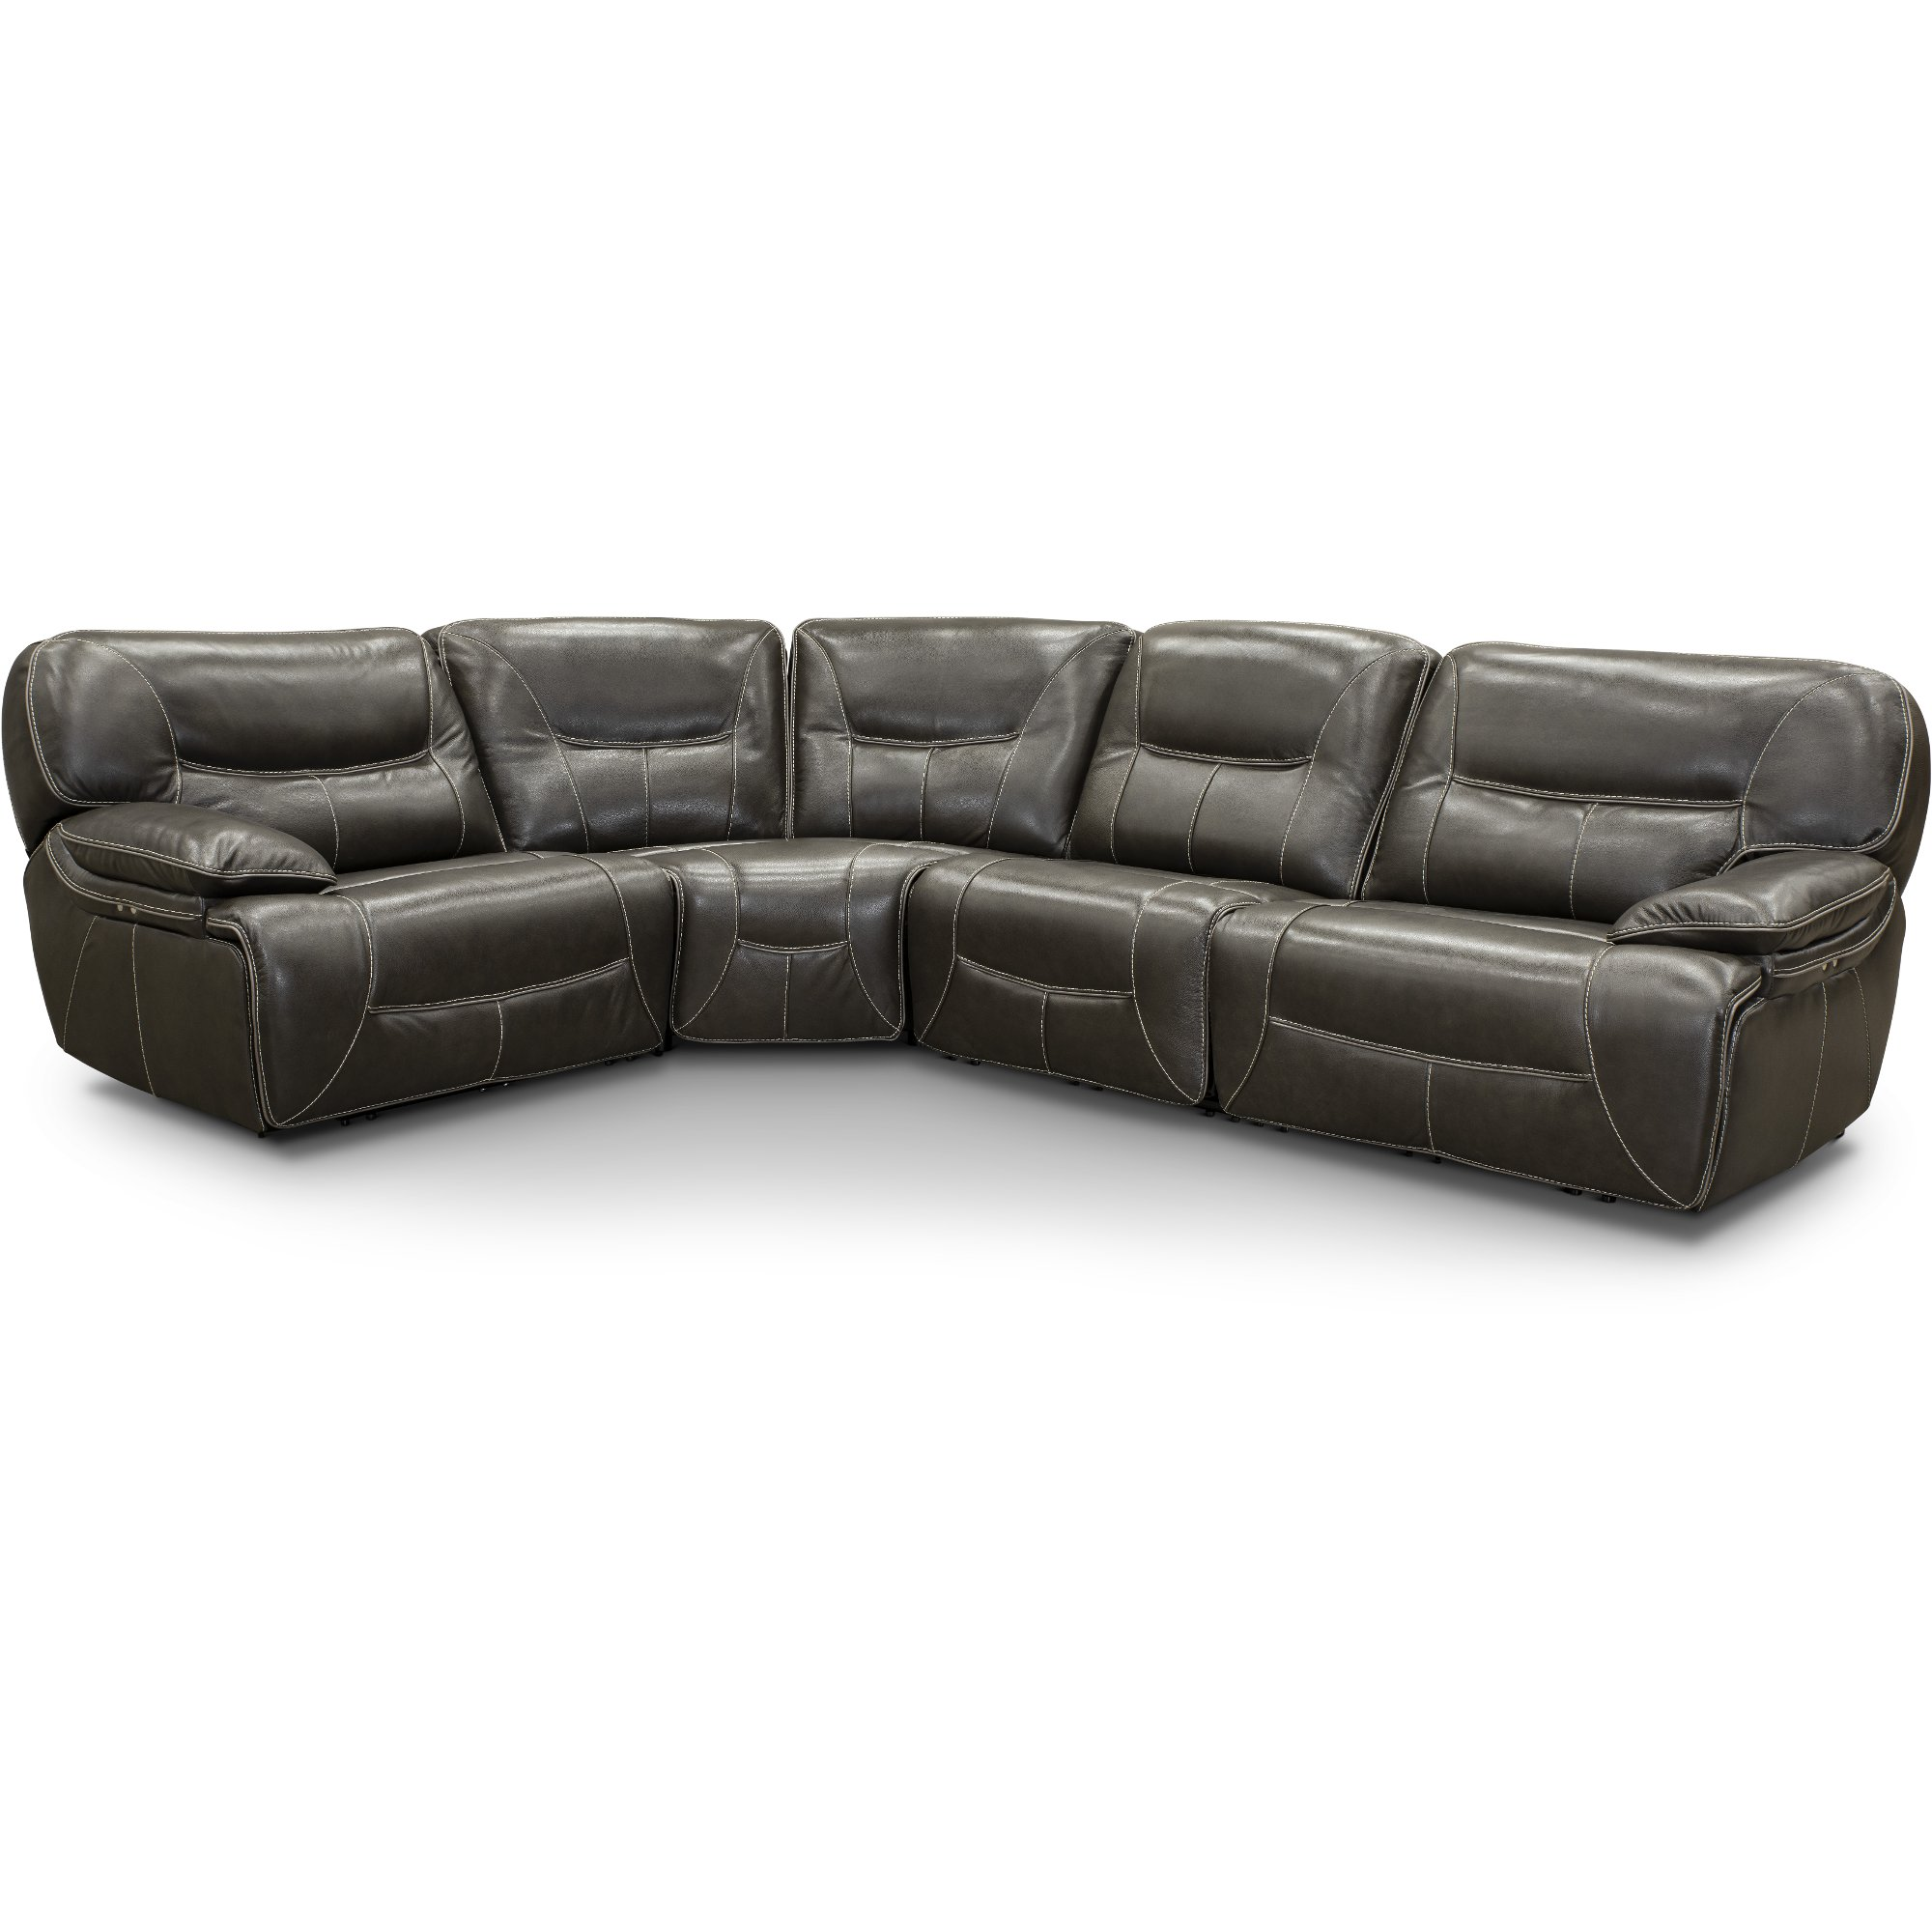 Steel Gray Leather Match 4 Piece Power Reclining Sectional